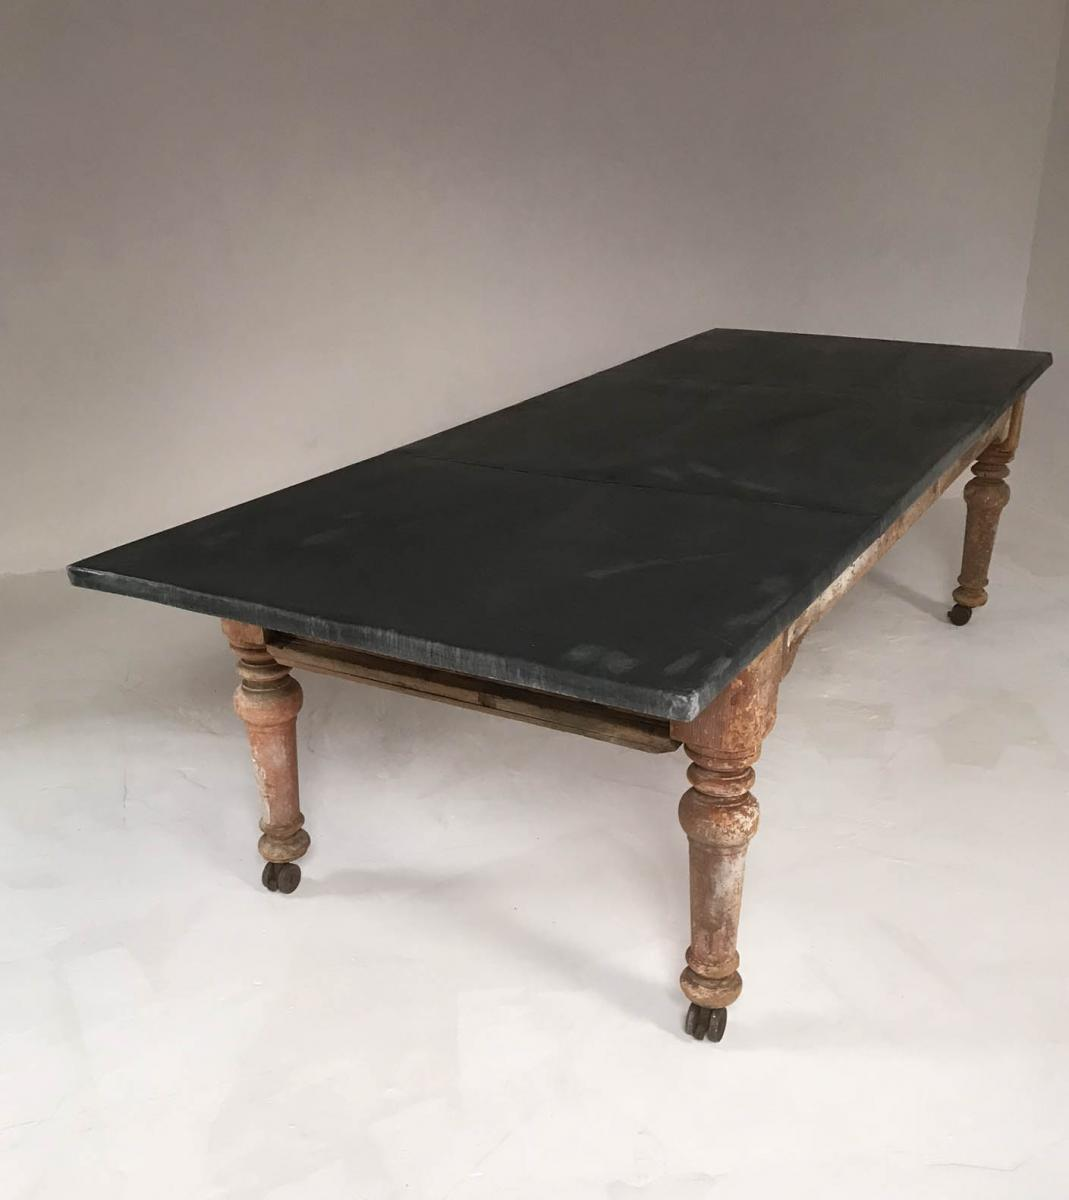 19th Century Victorian Rustic Dining Table with Aged Zinc Top